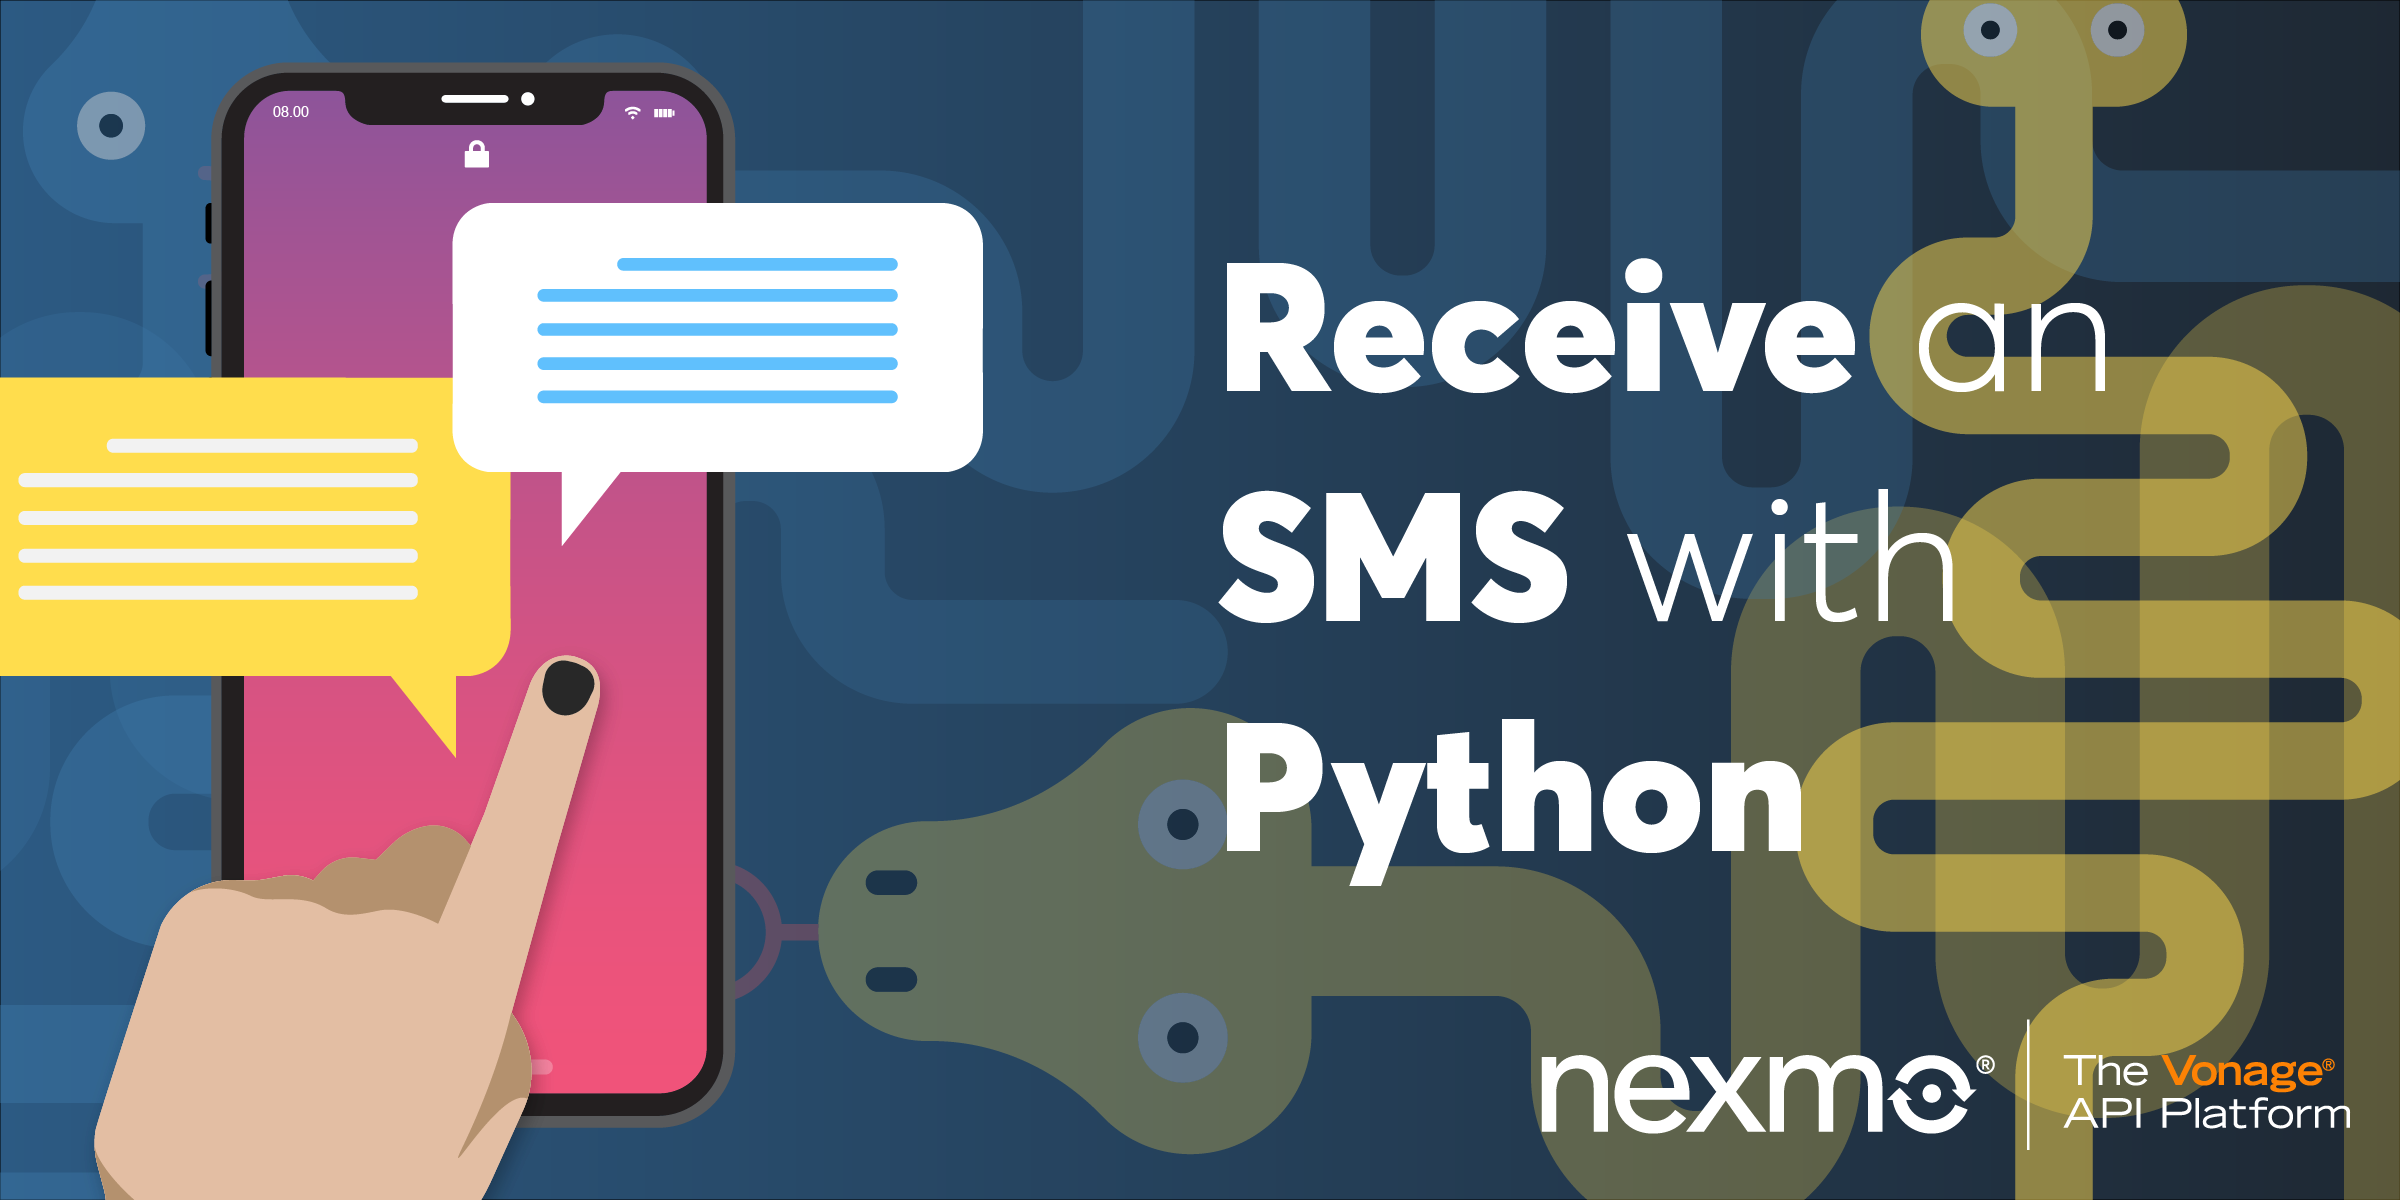 Receive an SMS with Python